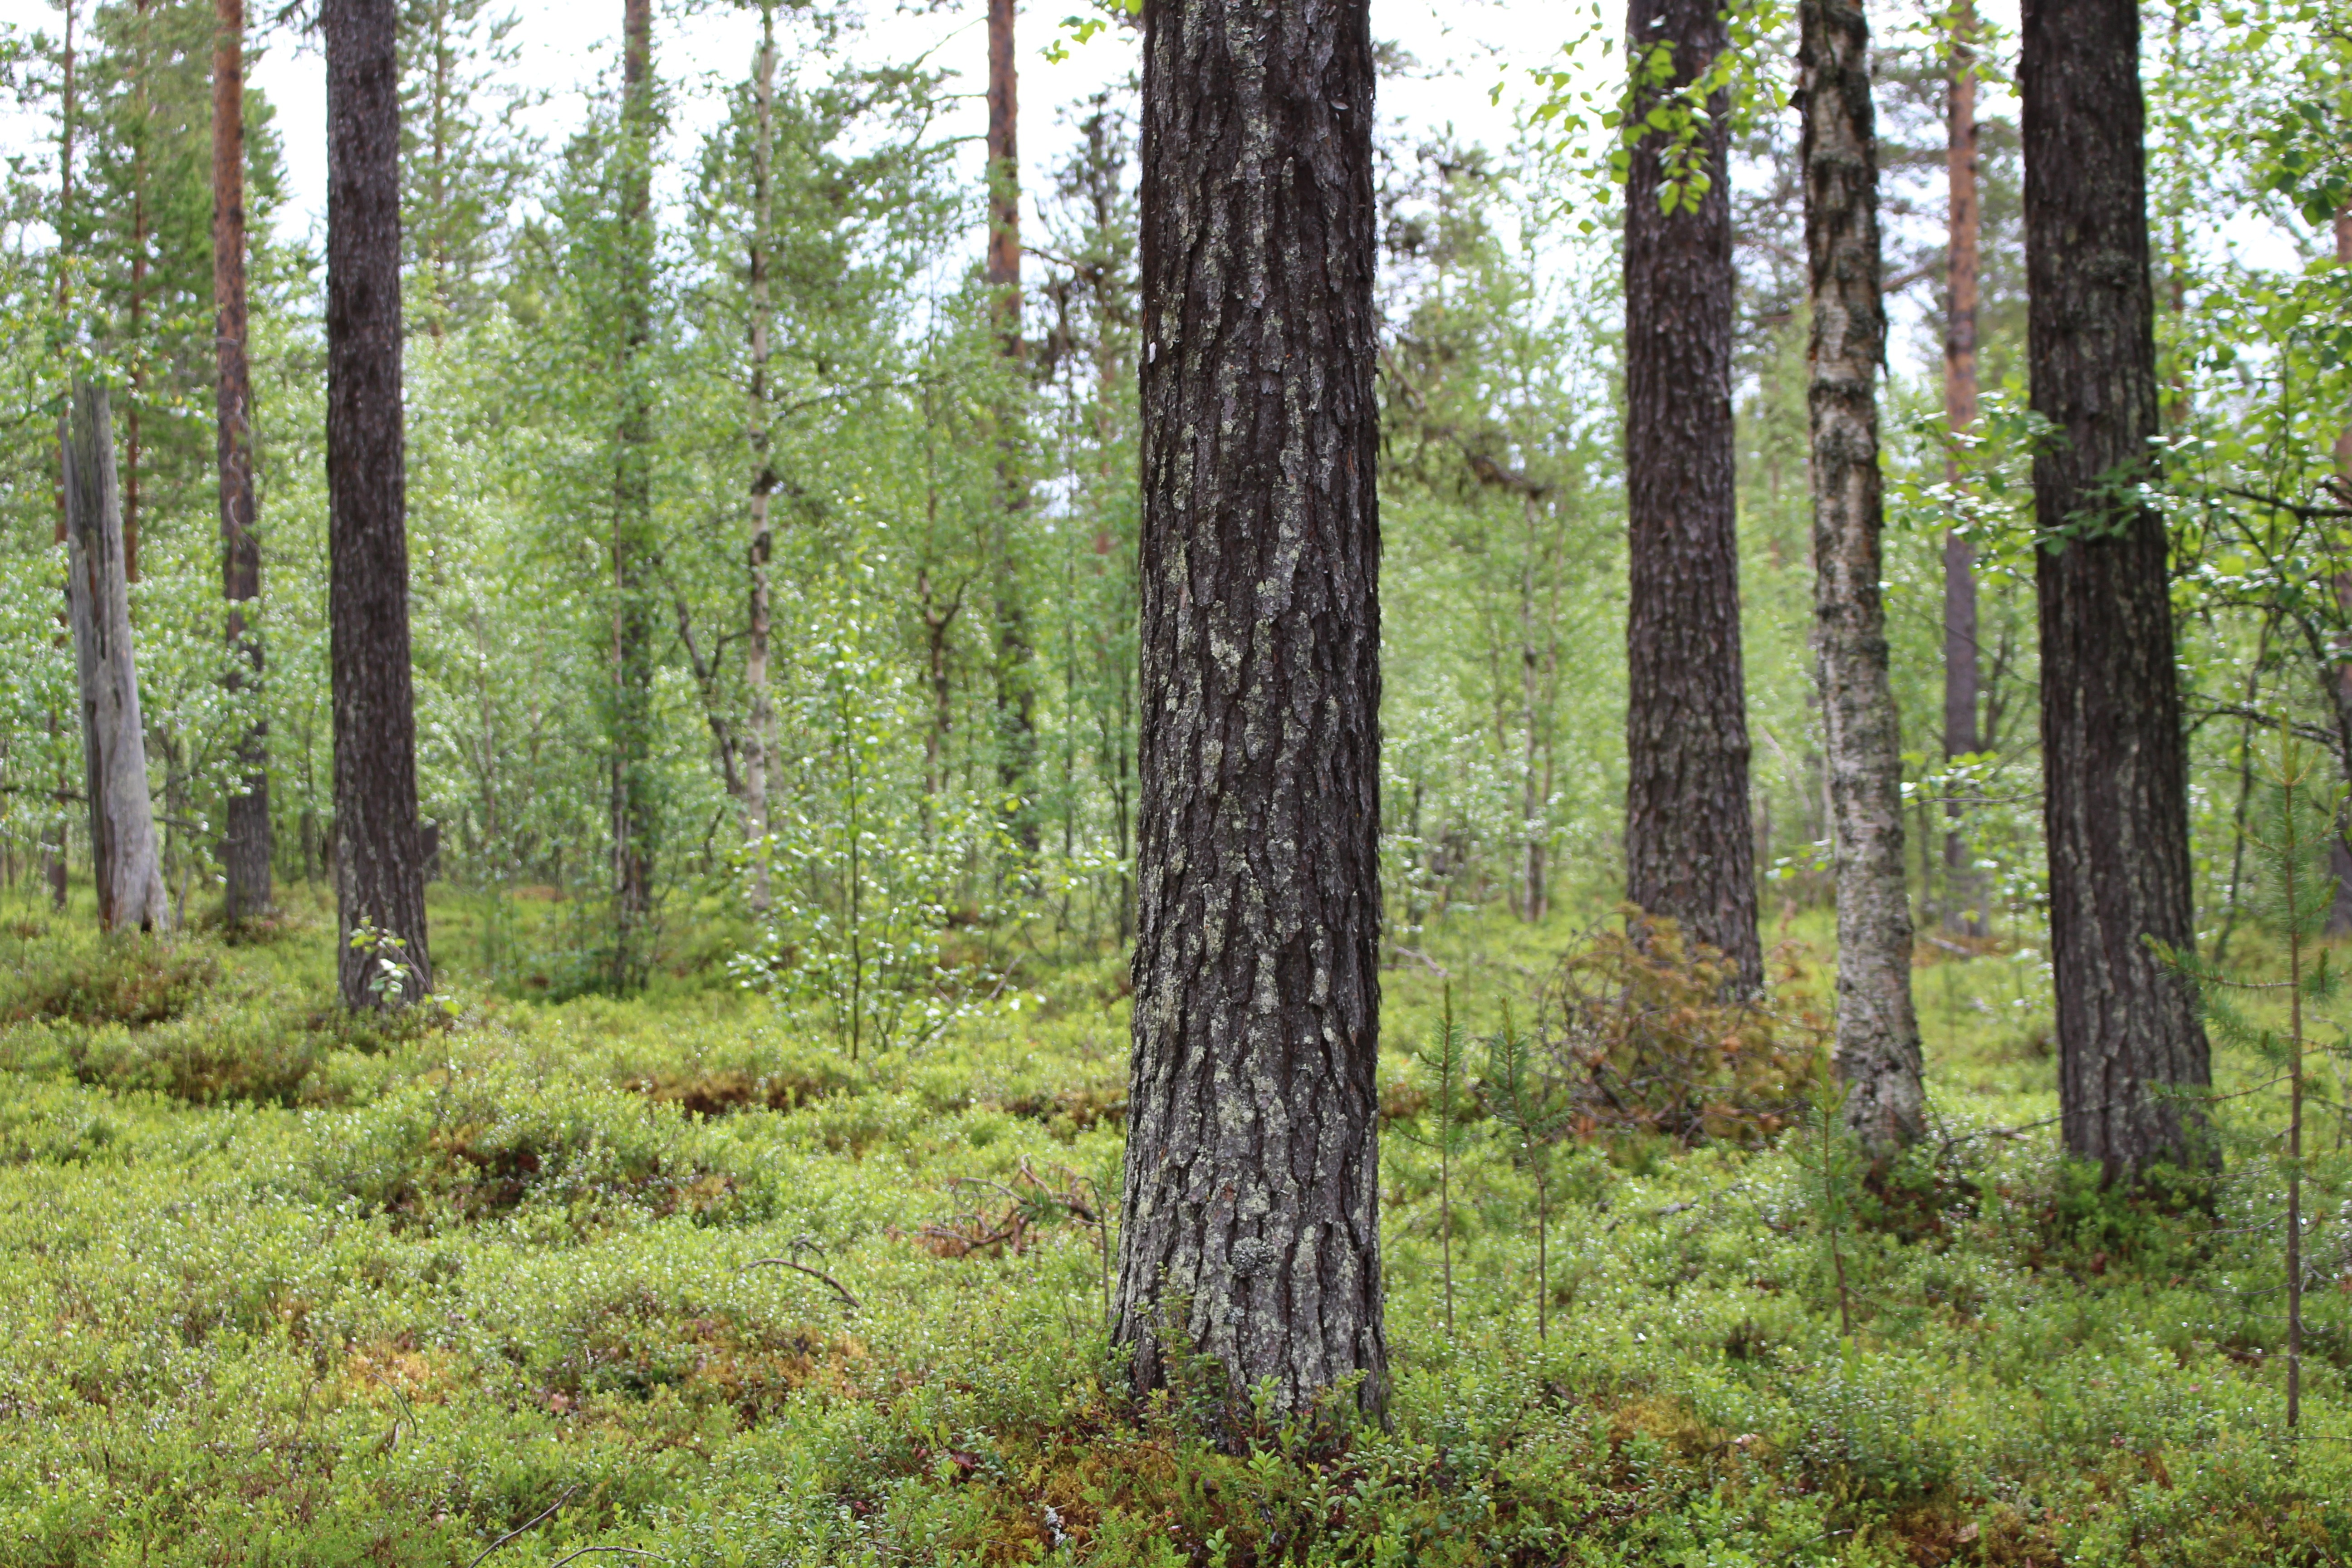 Halipuumetsä (Halipuu forest) is an important place for the whole Raekallio family.